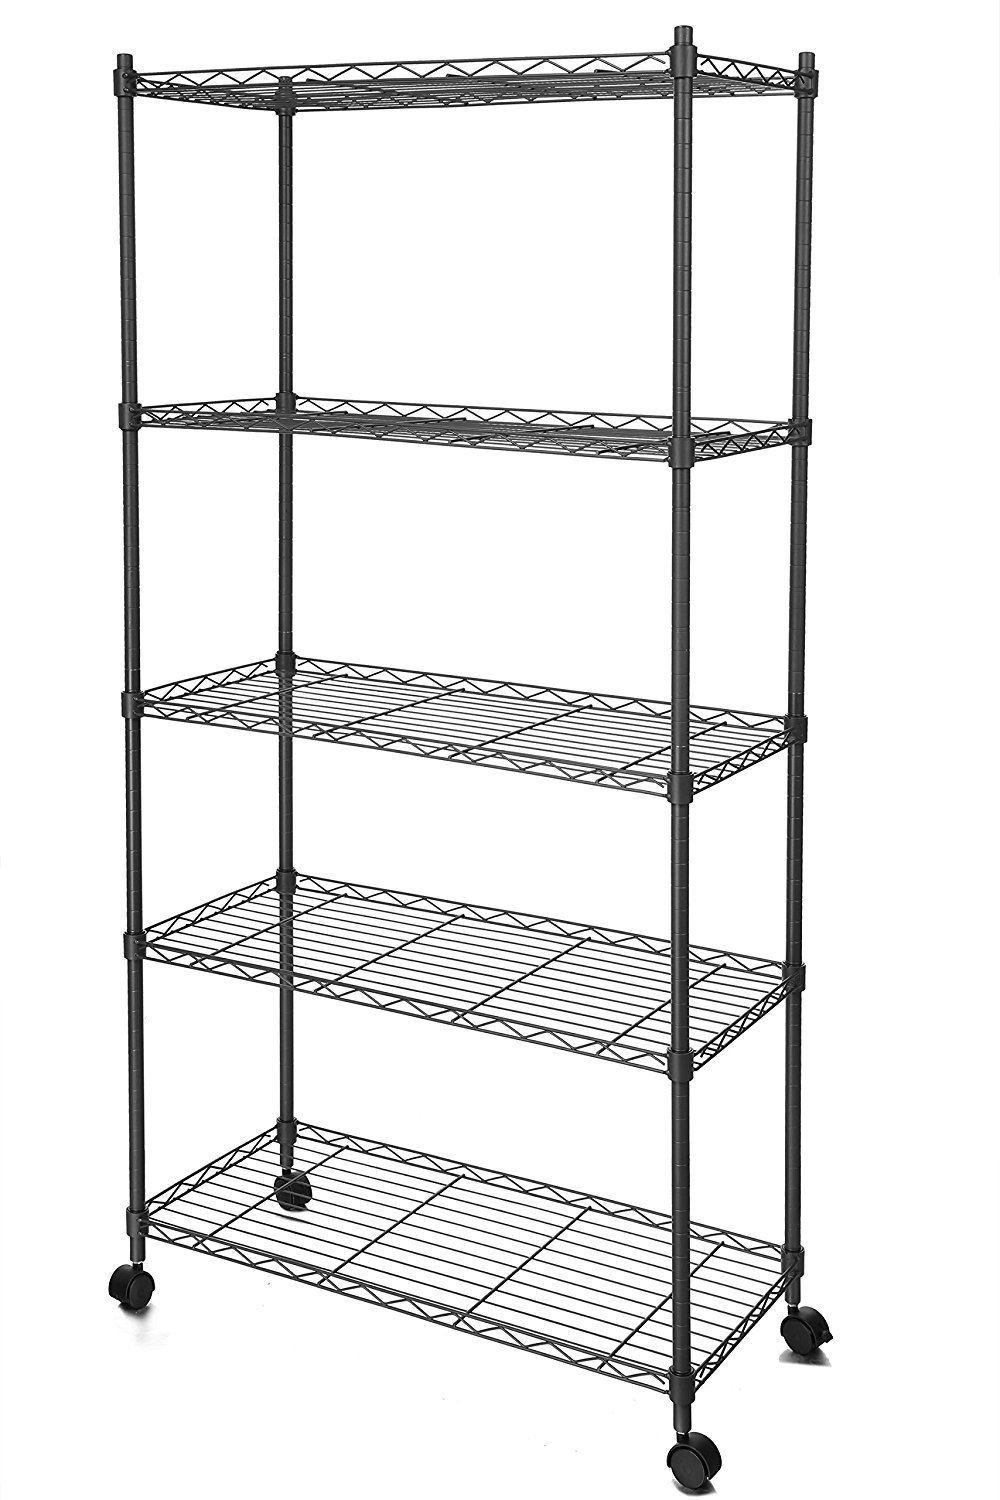 Lantusi 5 Tier Wire Shelving Unit, Adjustable Steel Wire Rack Shelving, 5 Shelves Storage Rack with Wheels,Black (US STOCK)